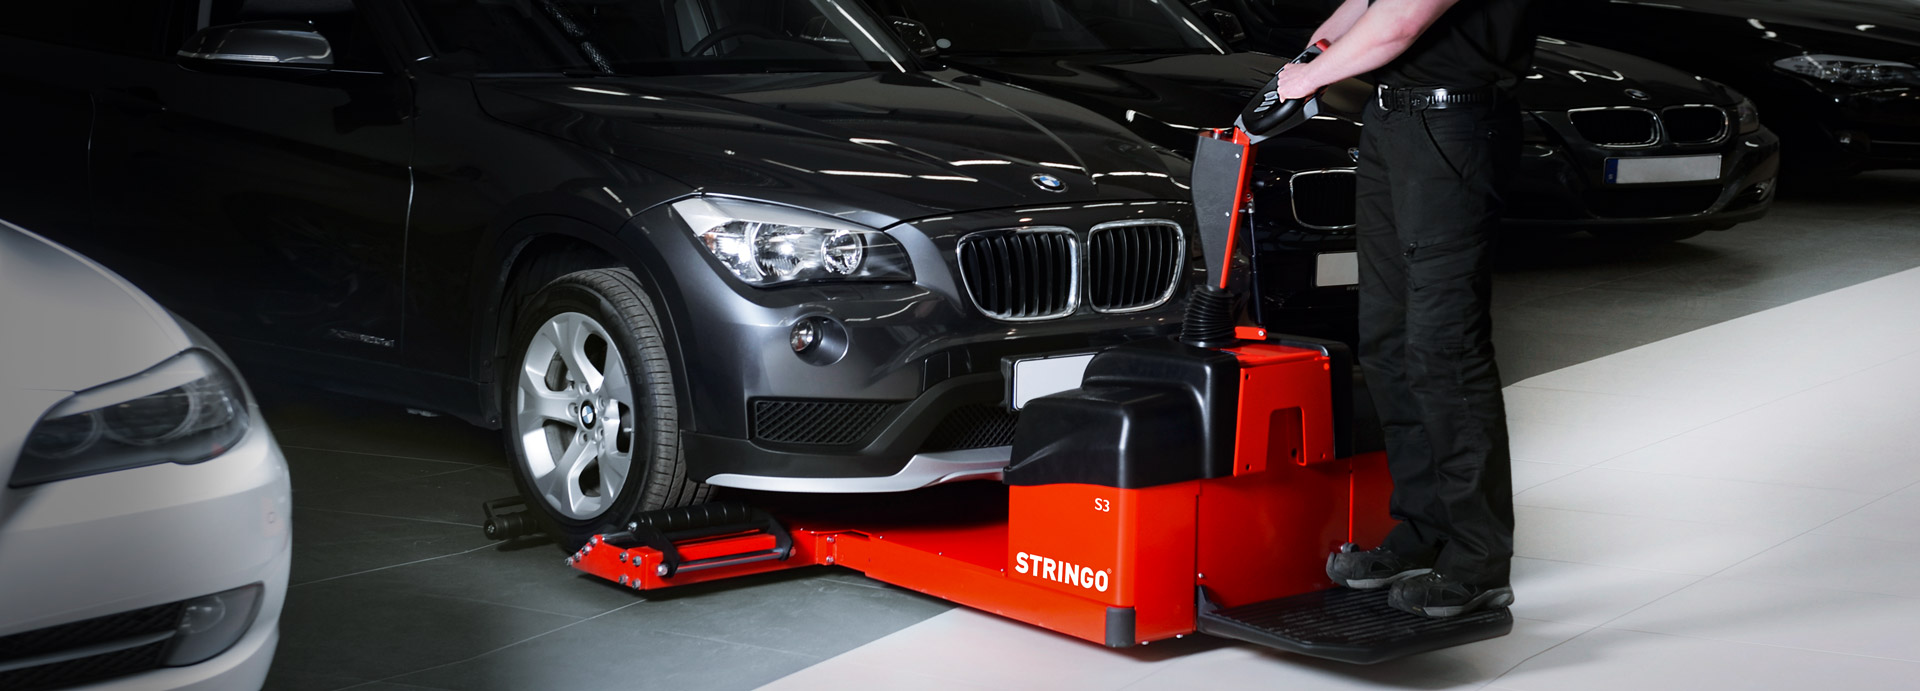 Stringo Vehicle Movers